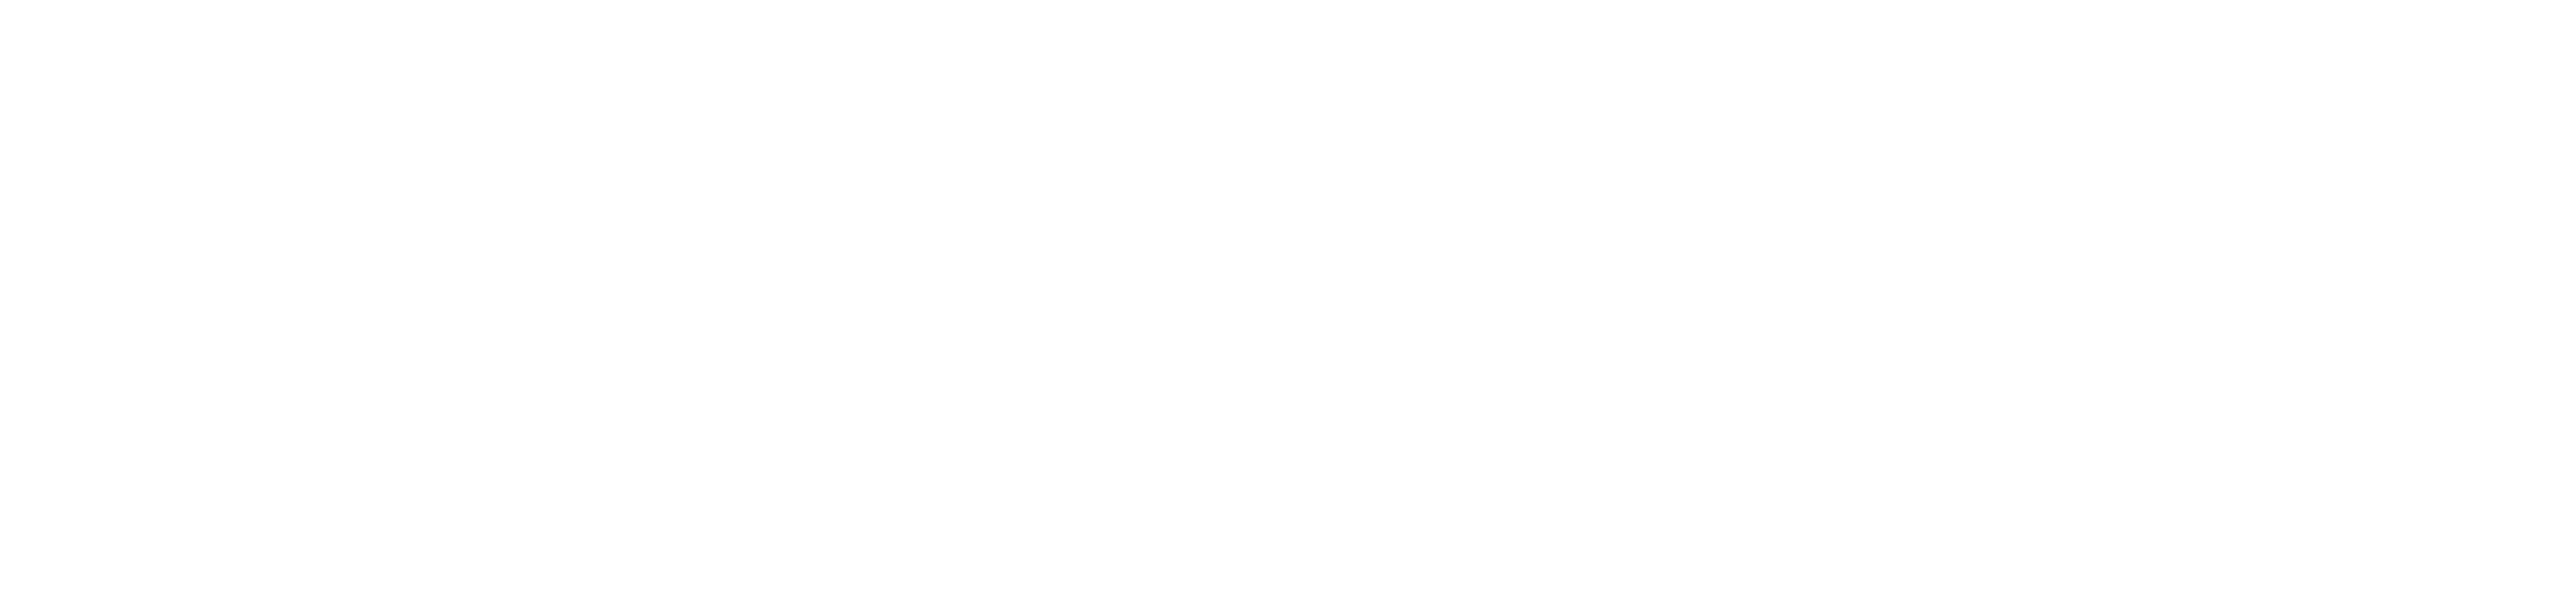 Junior's House, Inc